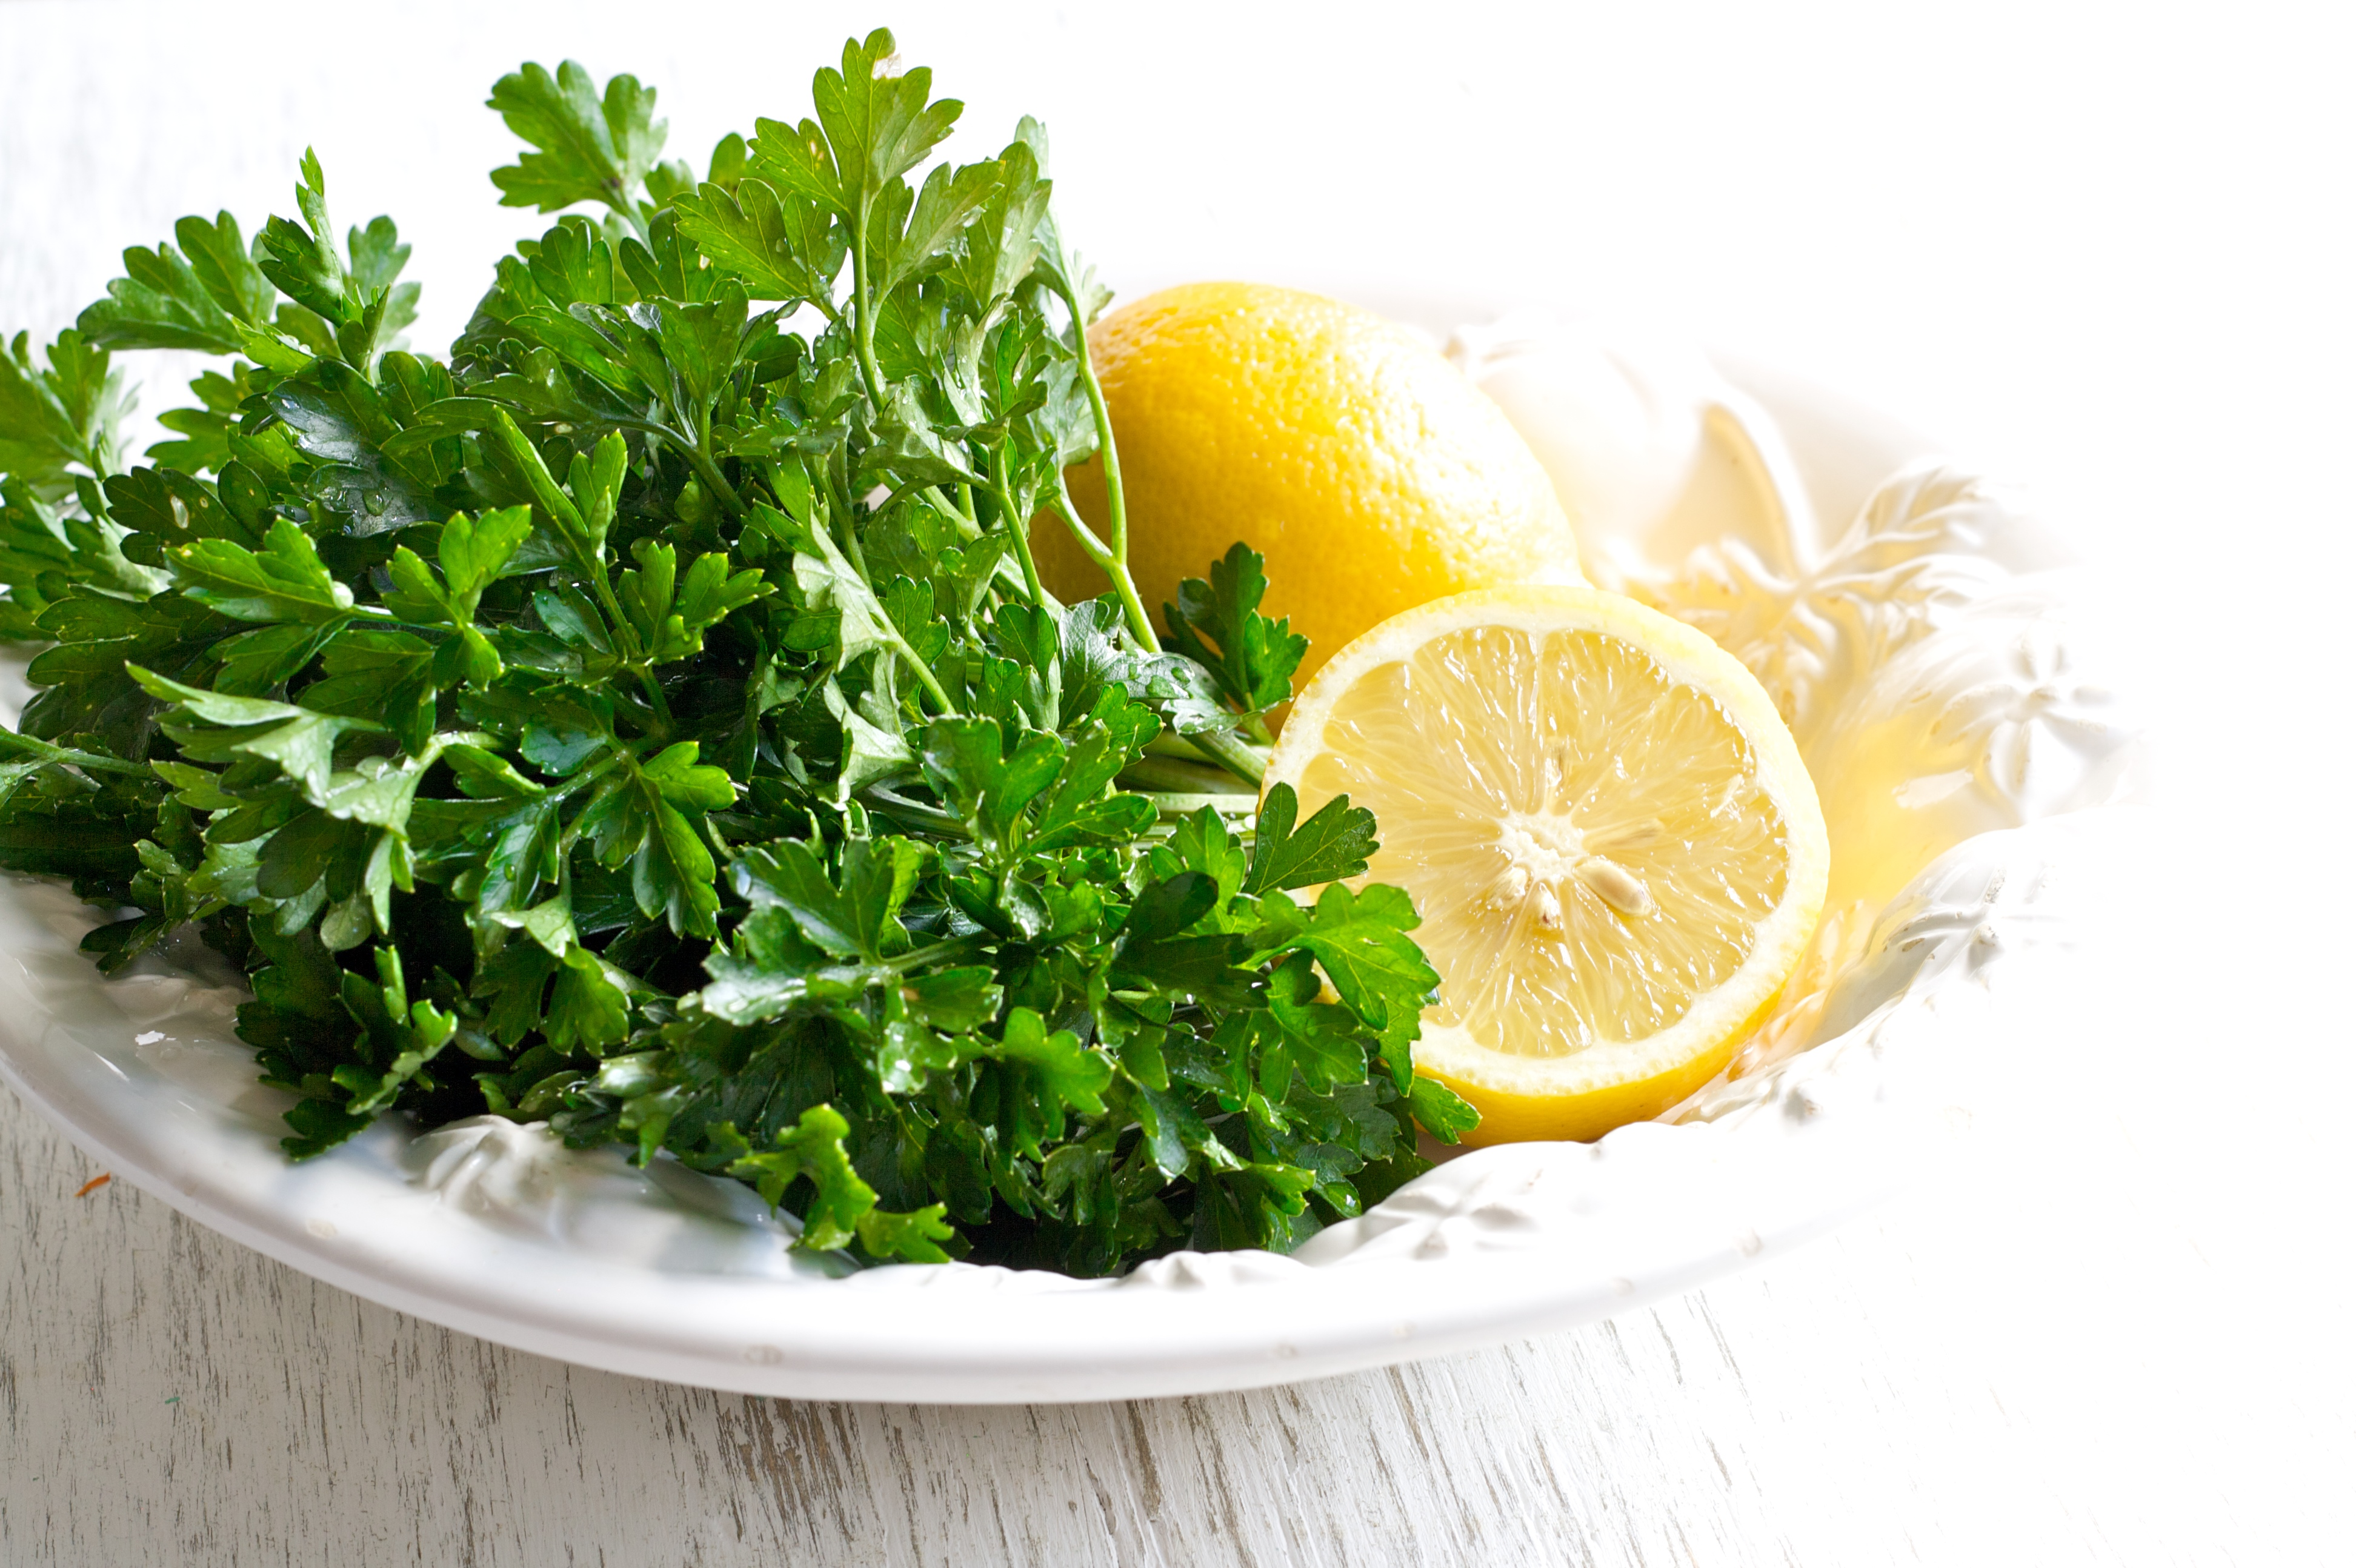 Image result for lemon and parsley